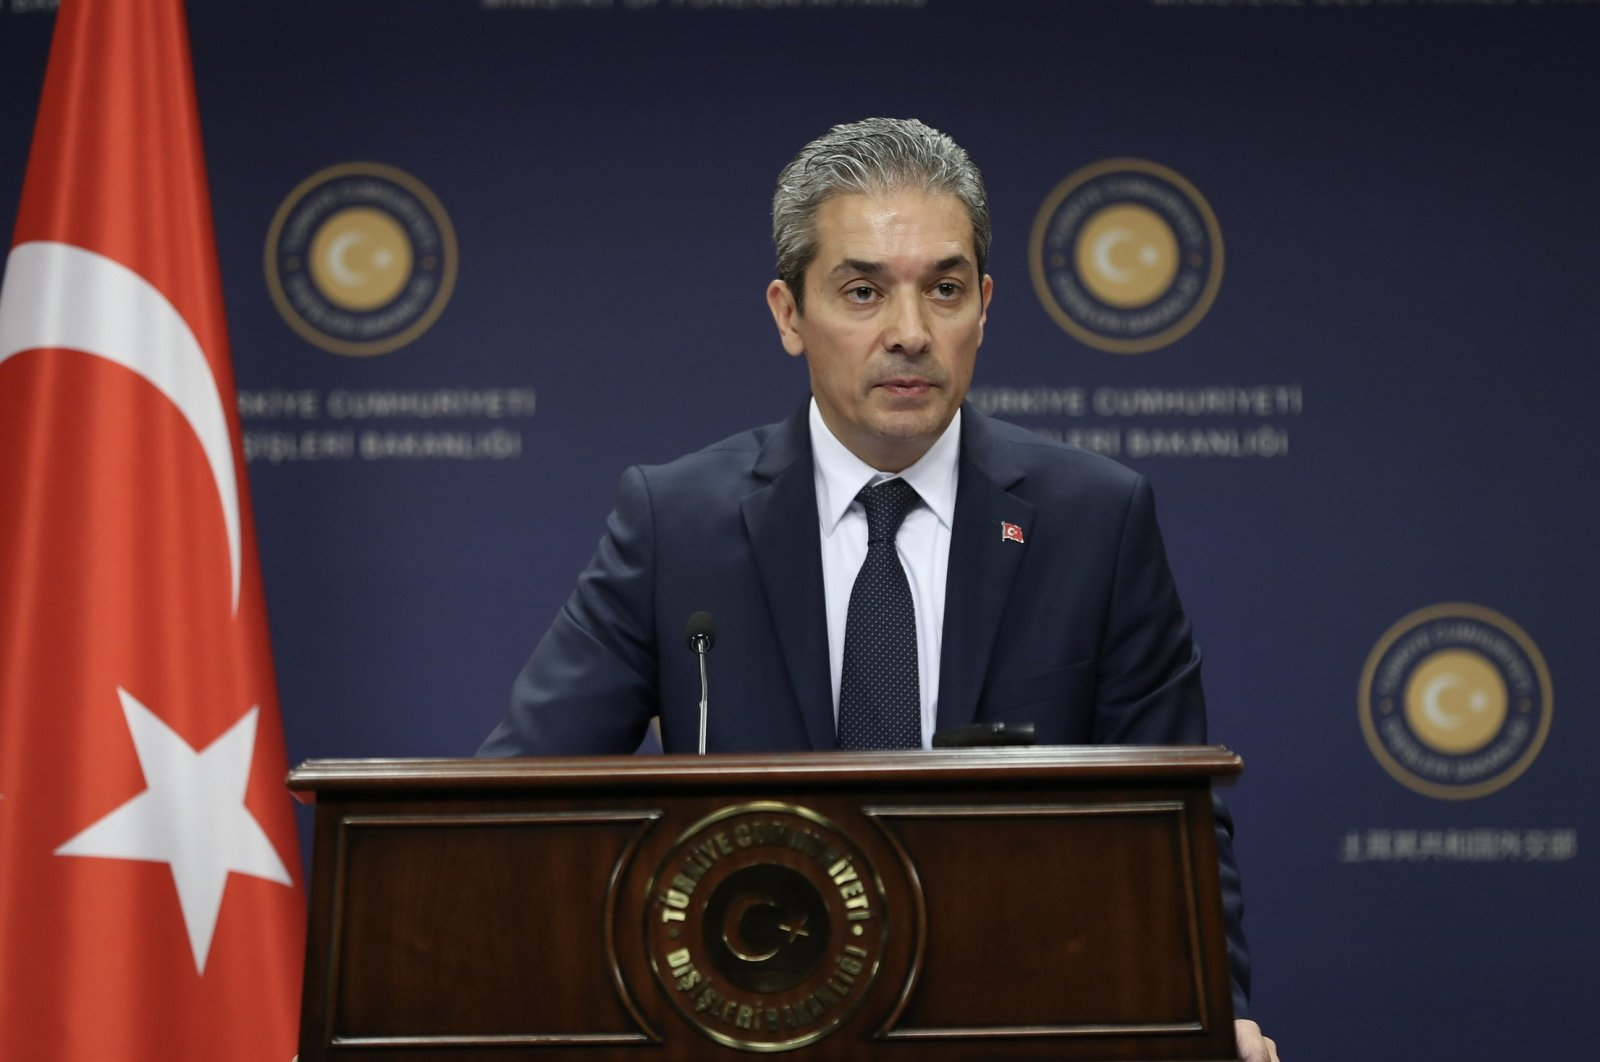 Foreign Ministry Spokesman Hami Aksoy speaks to reporters at a news conference in Ankara on May 28, 2020 (AA File Photo)